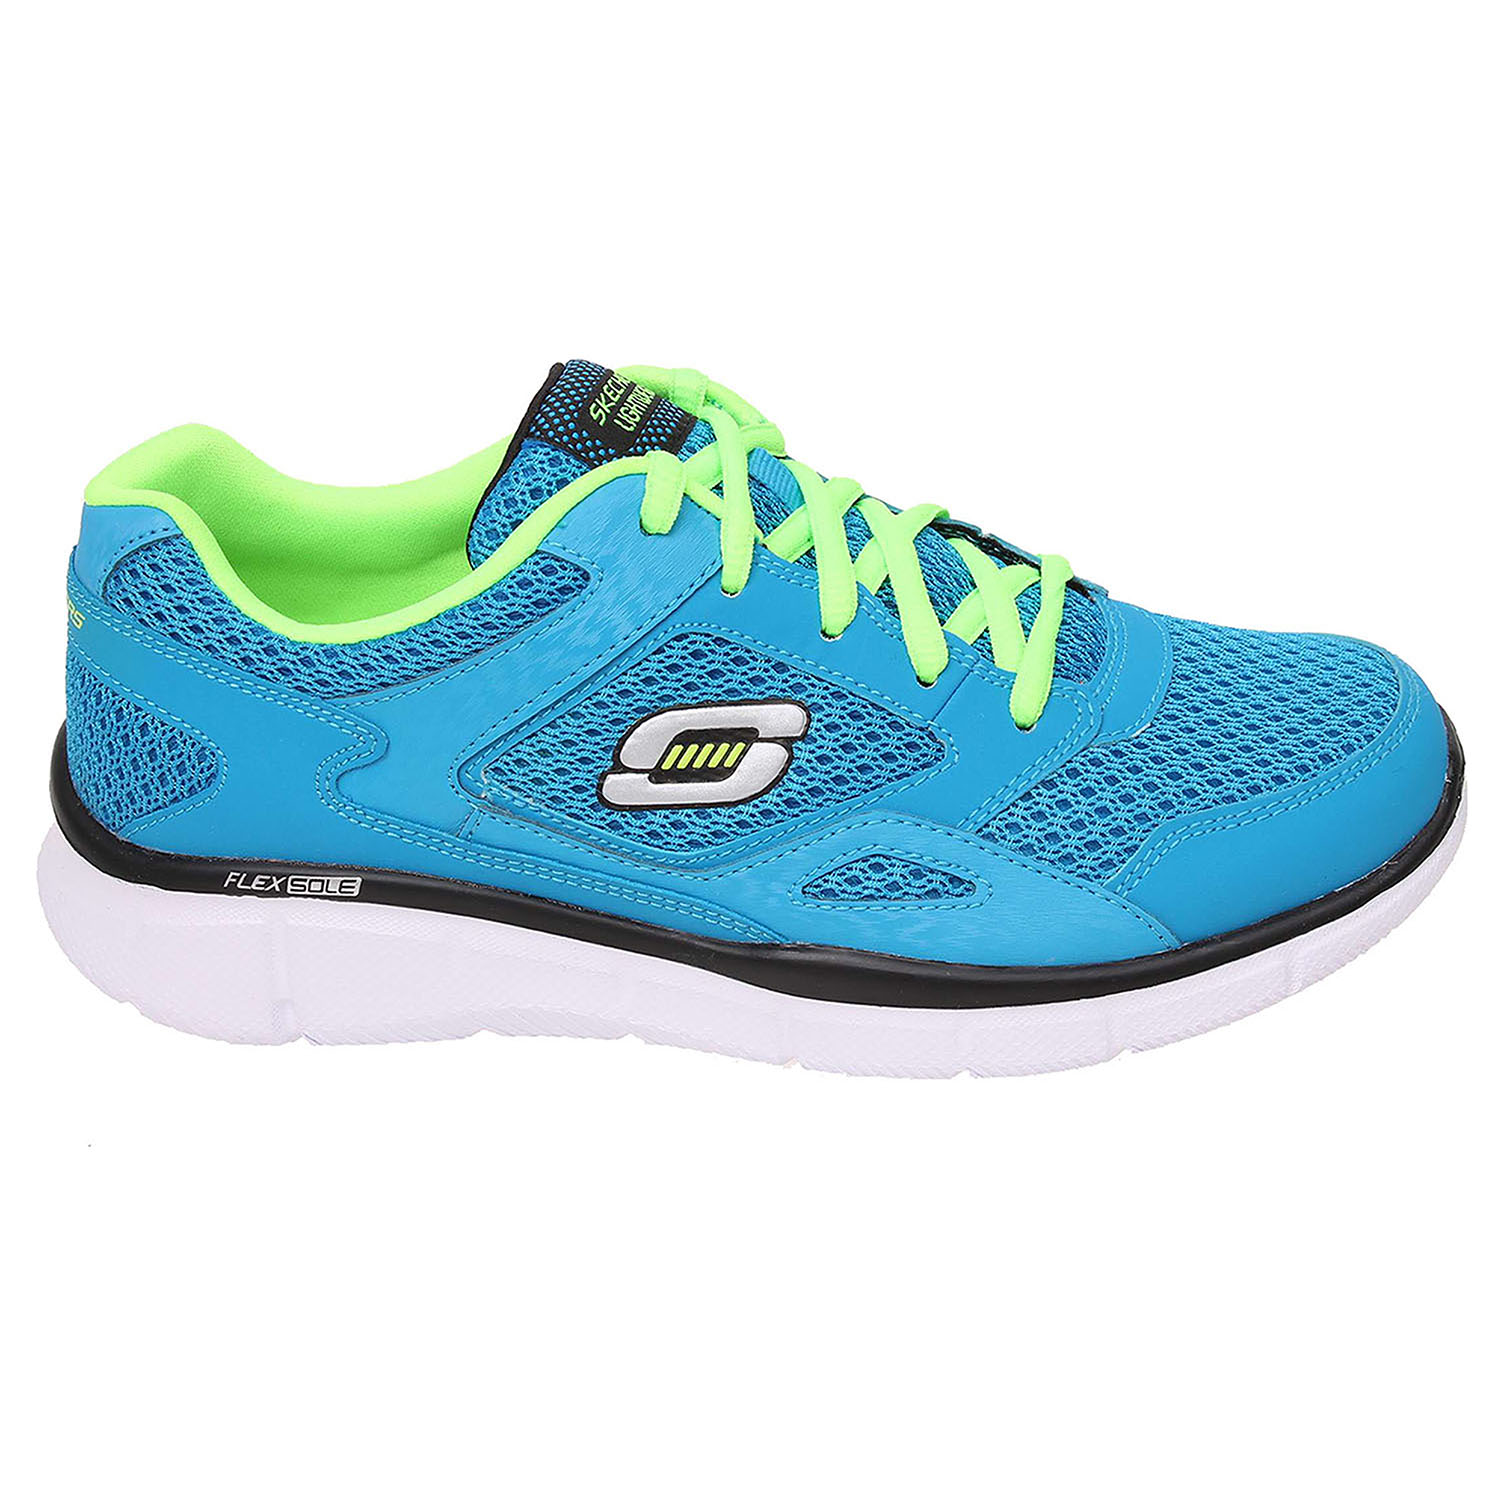 Skechers Equalizer blue-lime